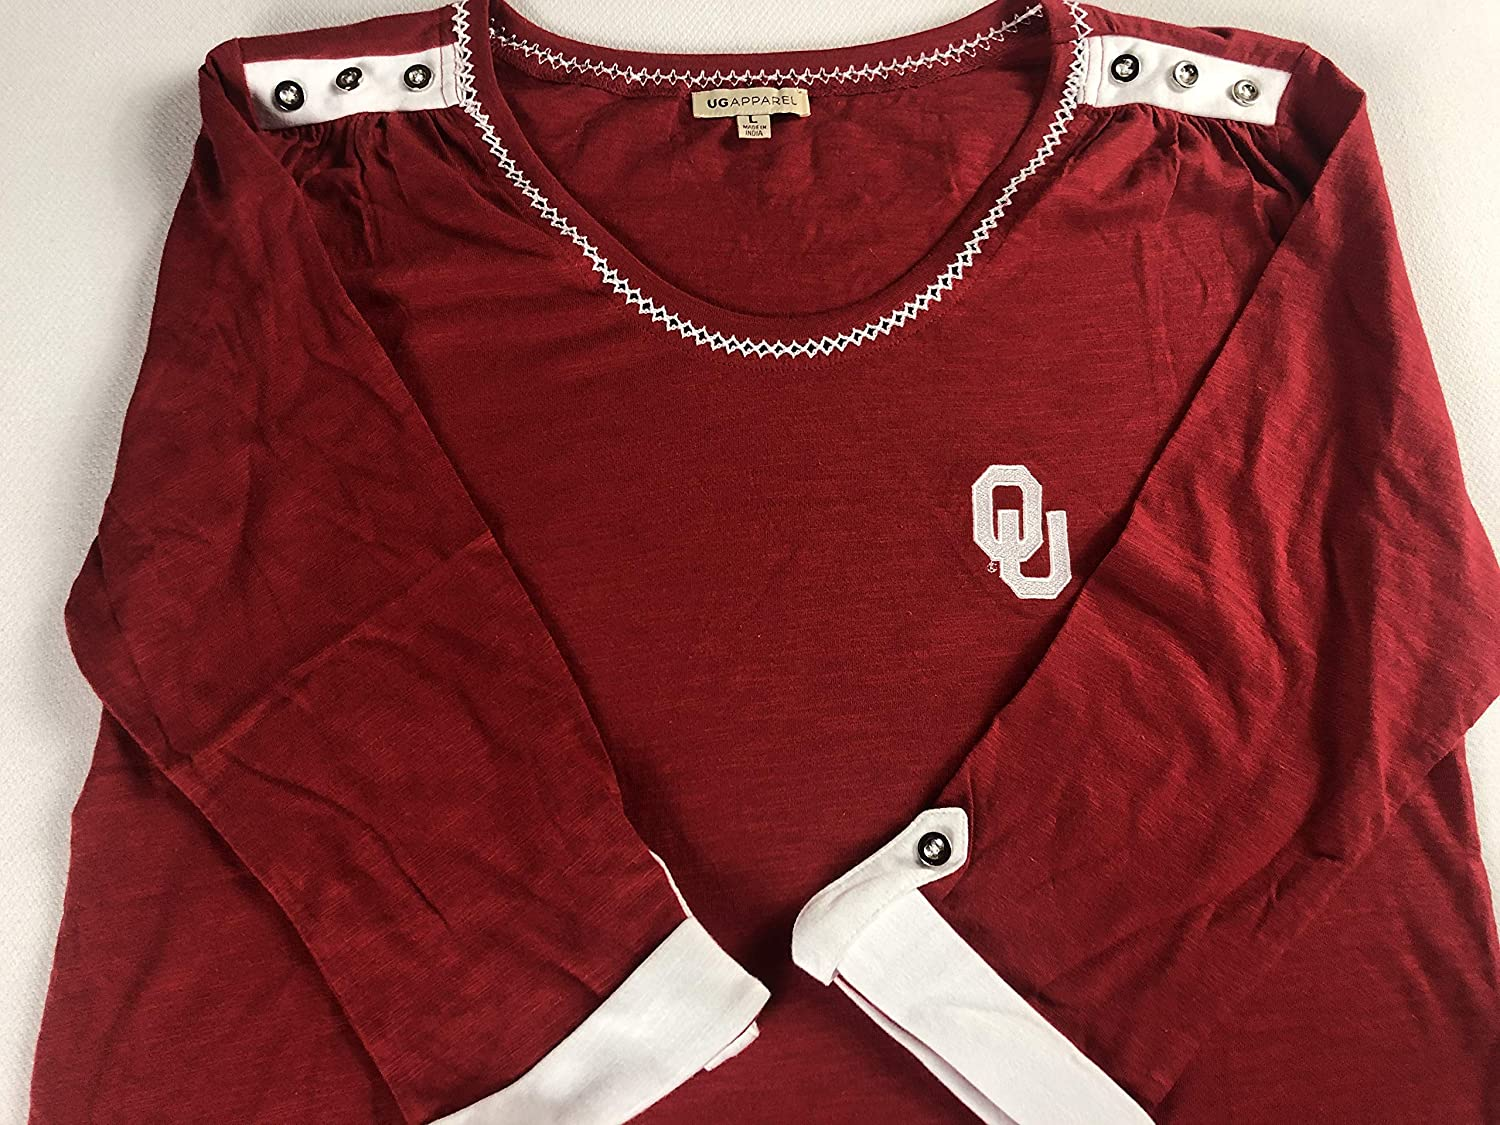 Sooners Oklahoma OU 3/4 Sleeve Shirt Womens Large Buttons Top Alumni Student